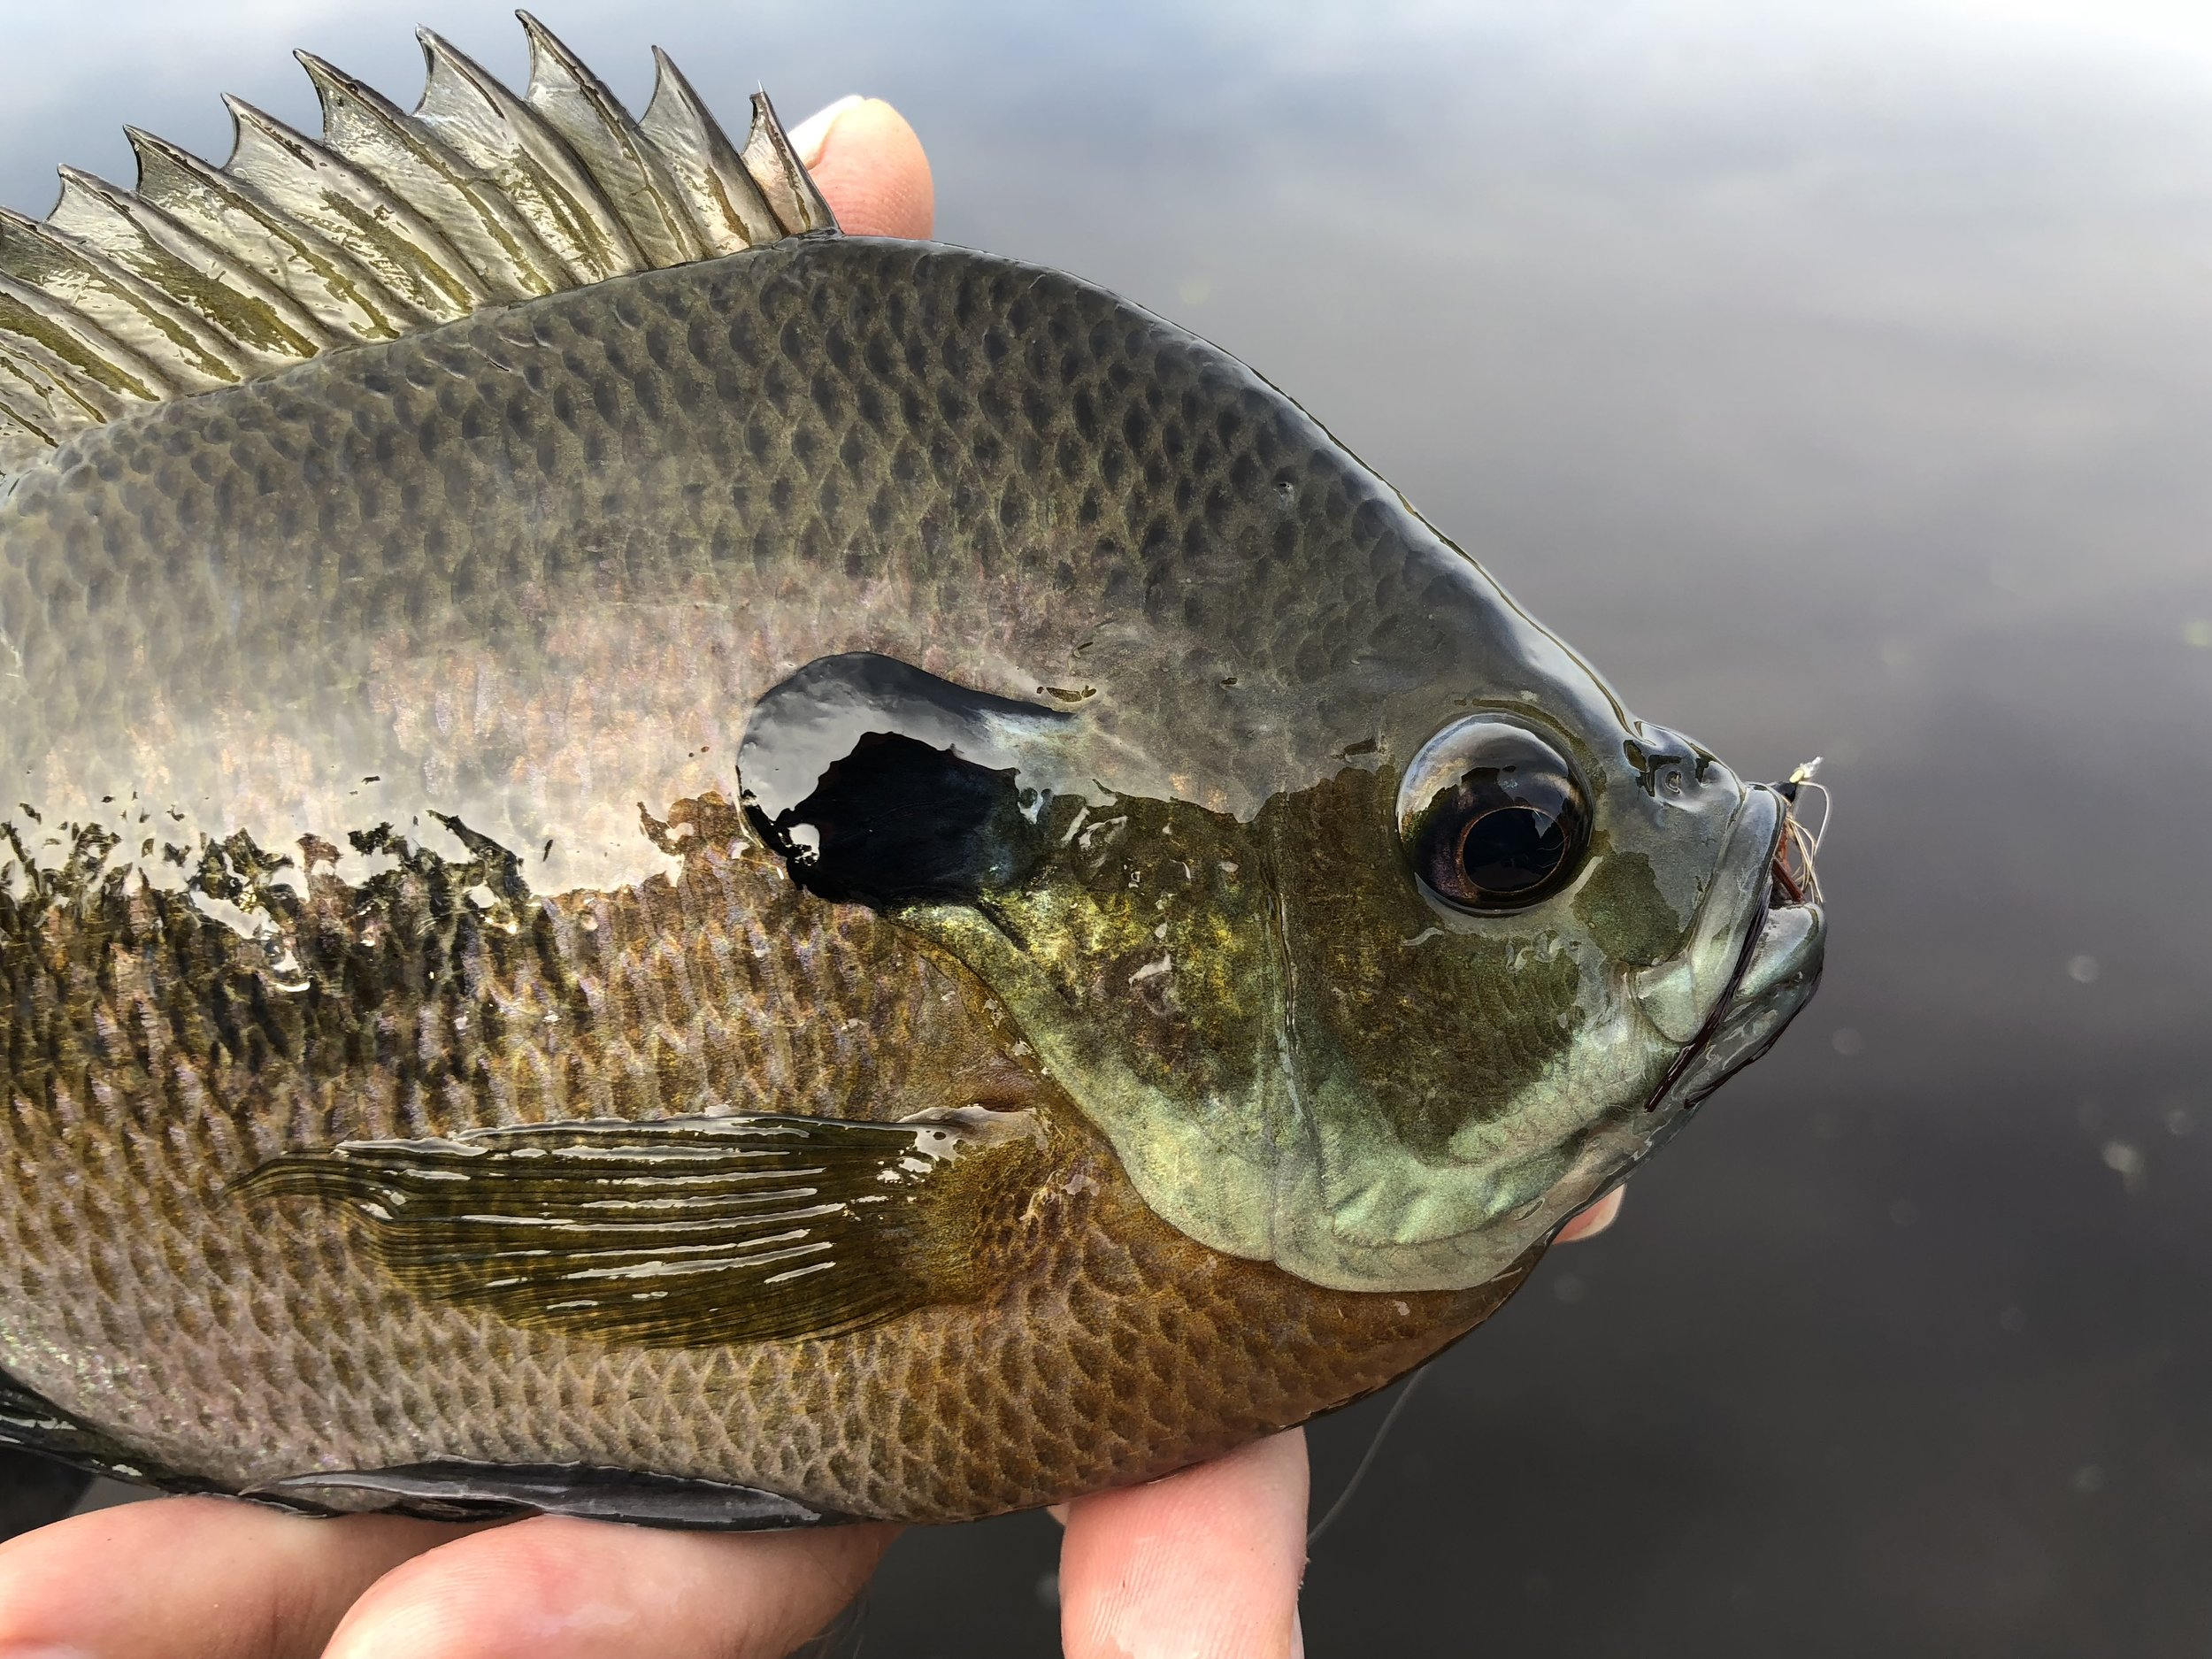 This bluegill had no problem taking a large, size 6 One Feather Wet Fly!